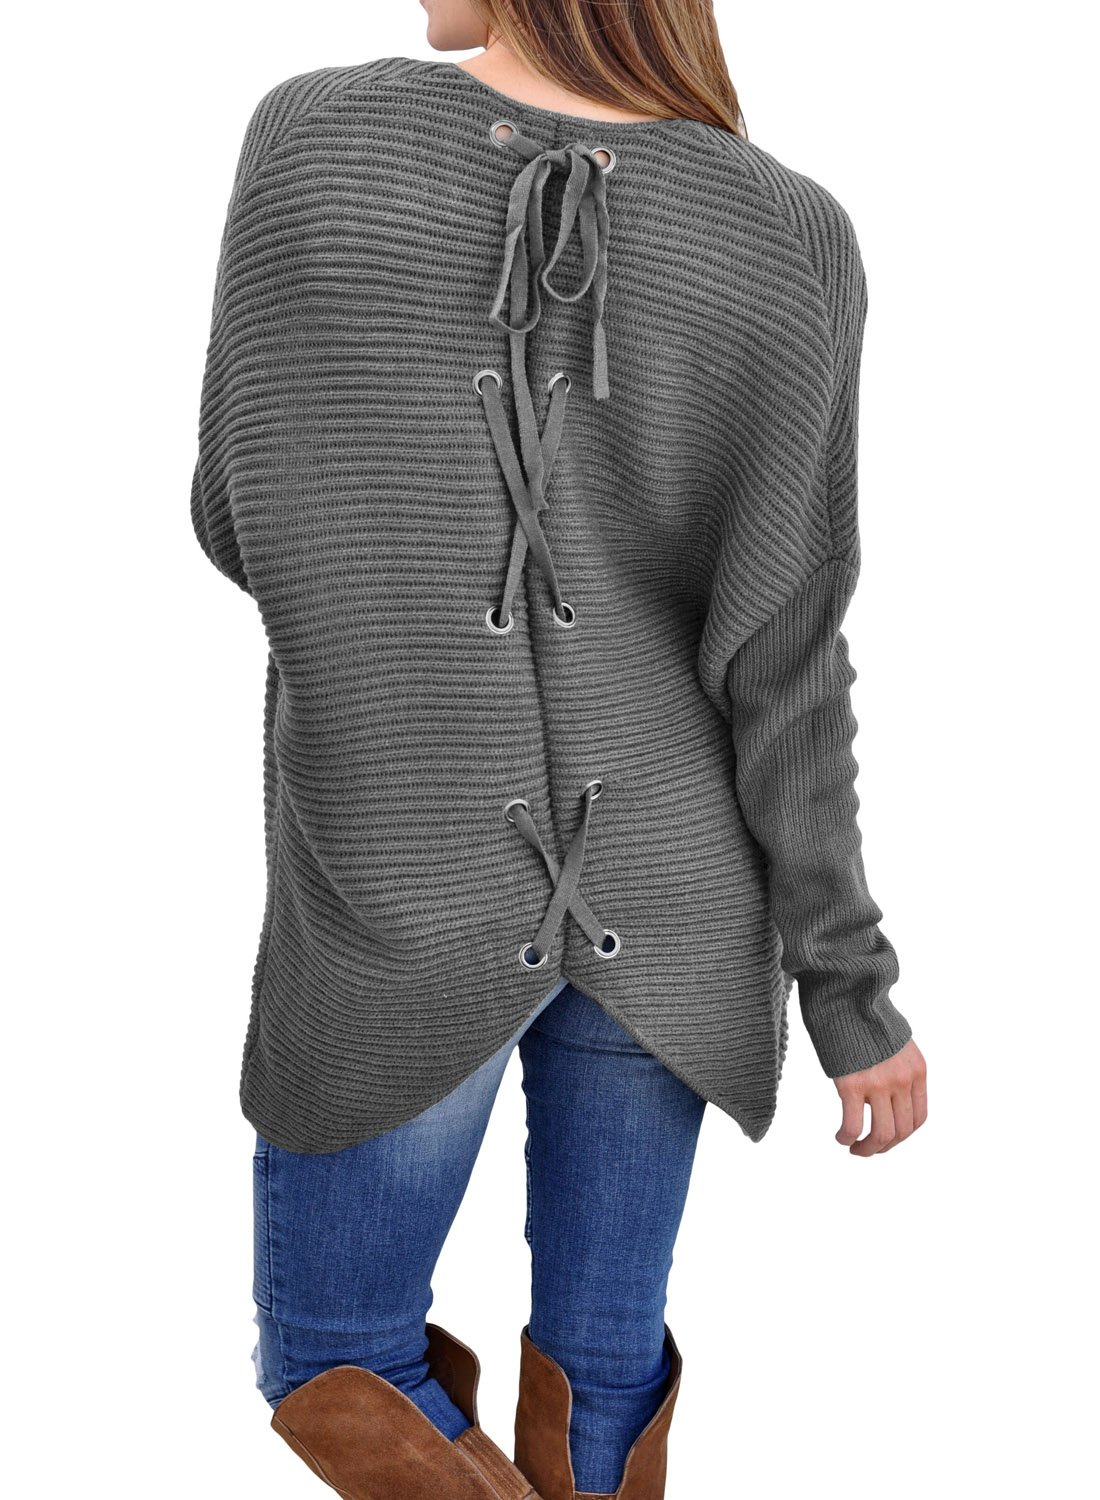 Women's Casual Long Sleeve Open Front Cardigans Ribbed Knit Sweaters Loose Lace up Back Oversized Outerwear Coat Grey Plus Size XL 16 18